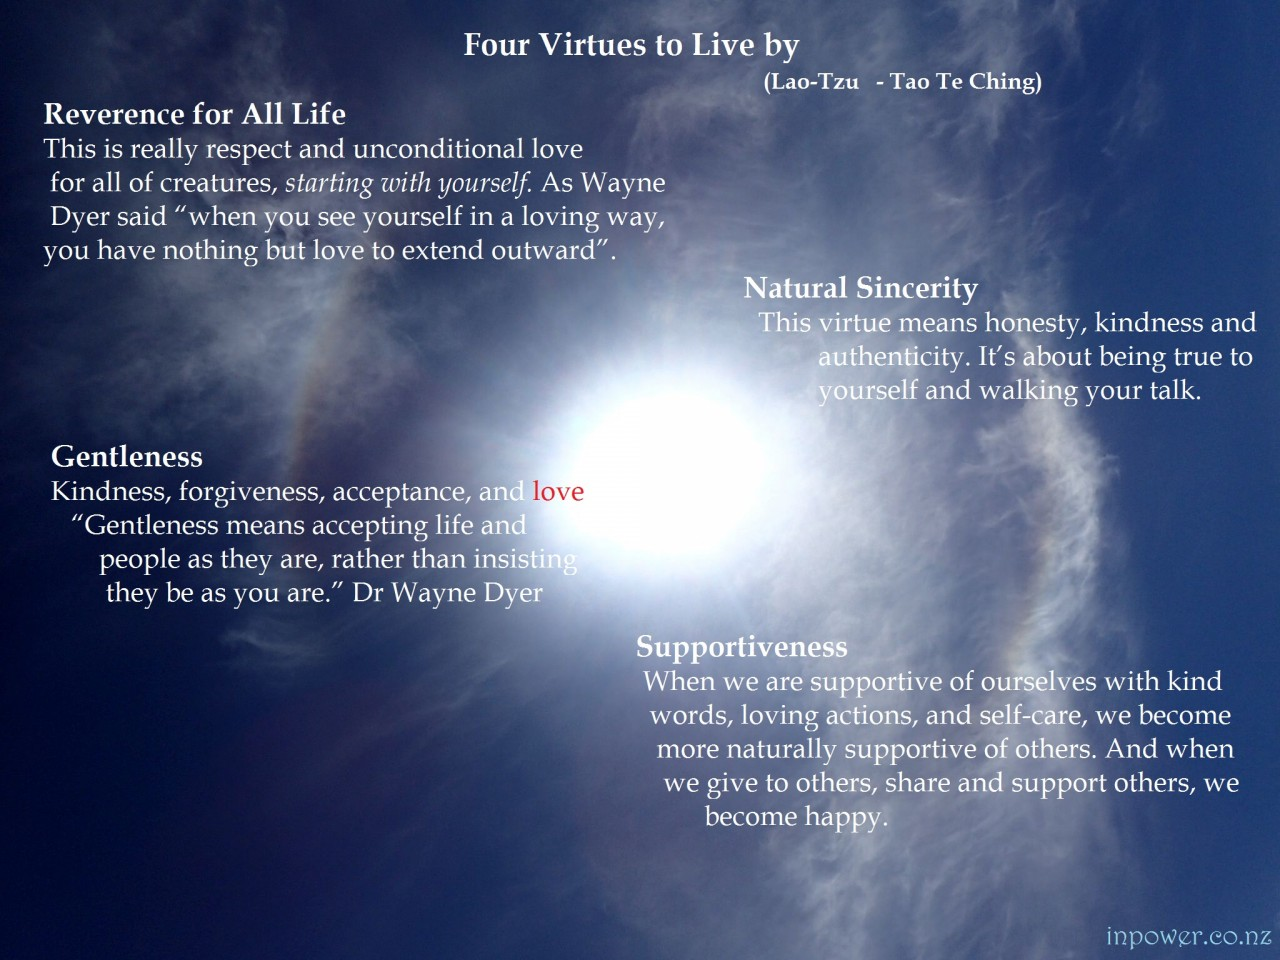 4 Virtues to Live by